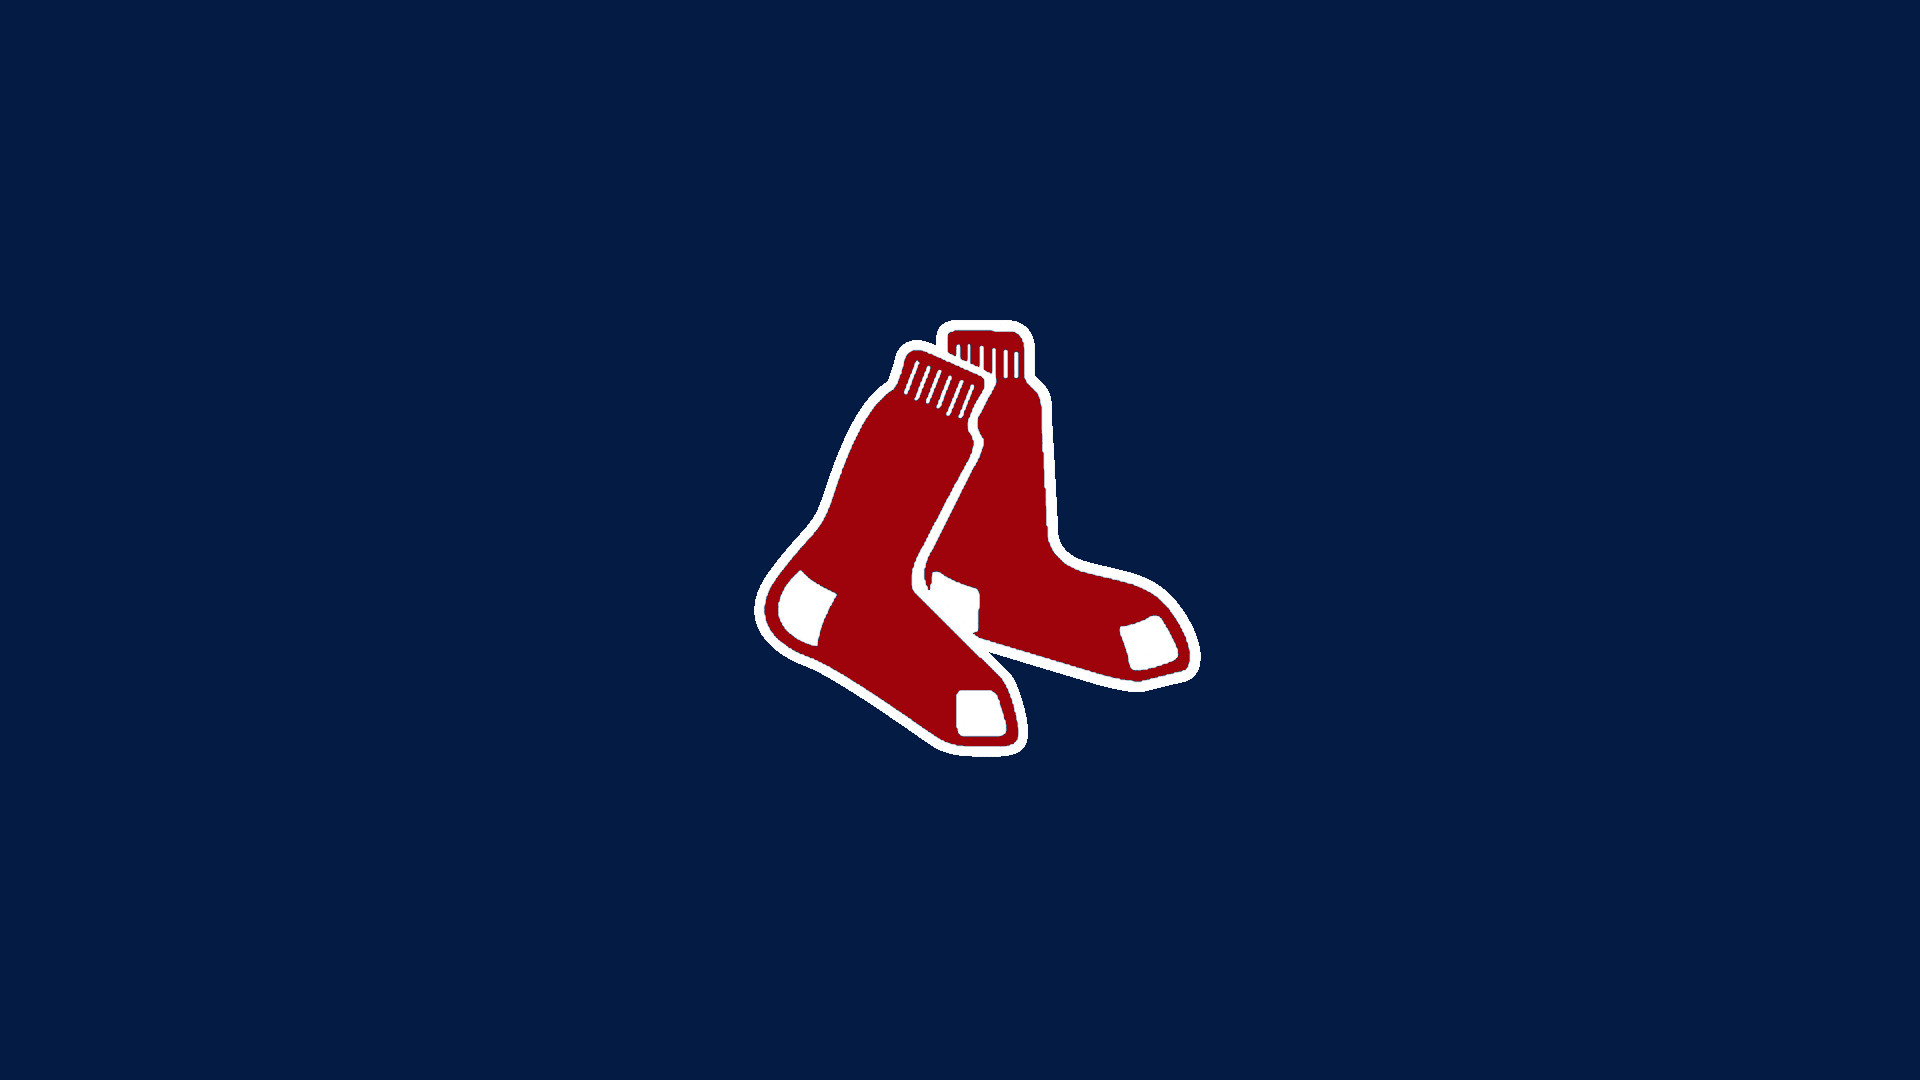 Res: 1920x1080, Boston Red Sox Wallpaper Screensavers - WallpaperSafari